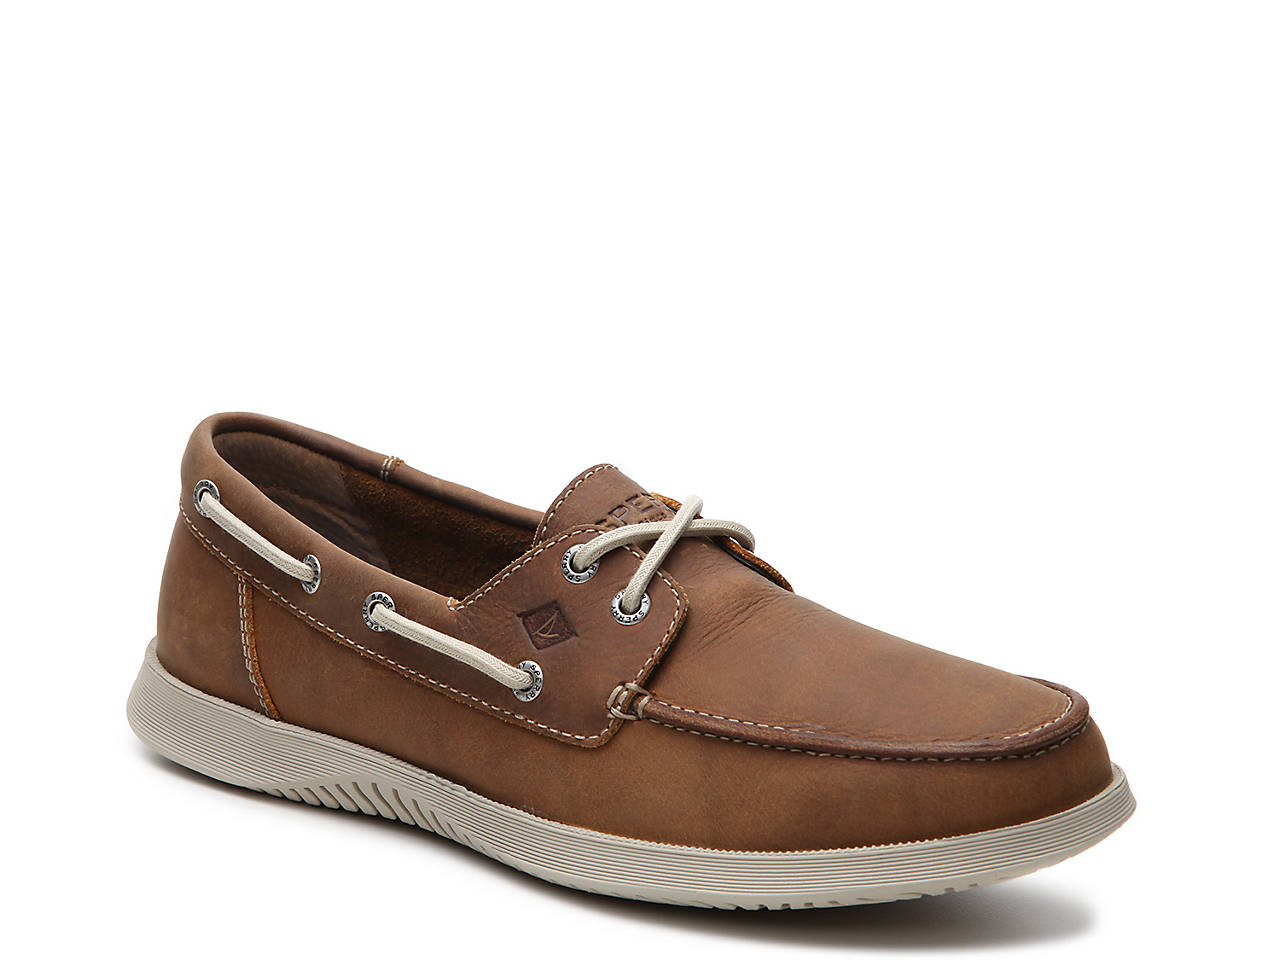 Limited Edition Sale Online 2018 Unisex Cheap Price BOAT SHOE - Boat shoes - tan ugauShWVFa